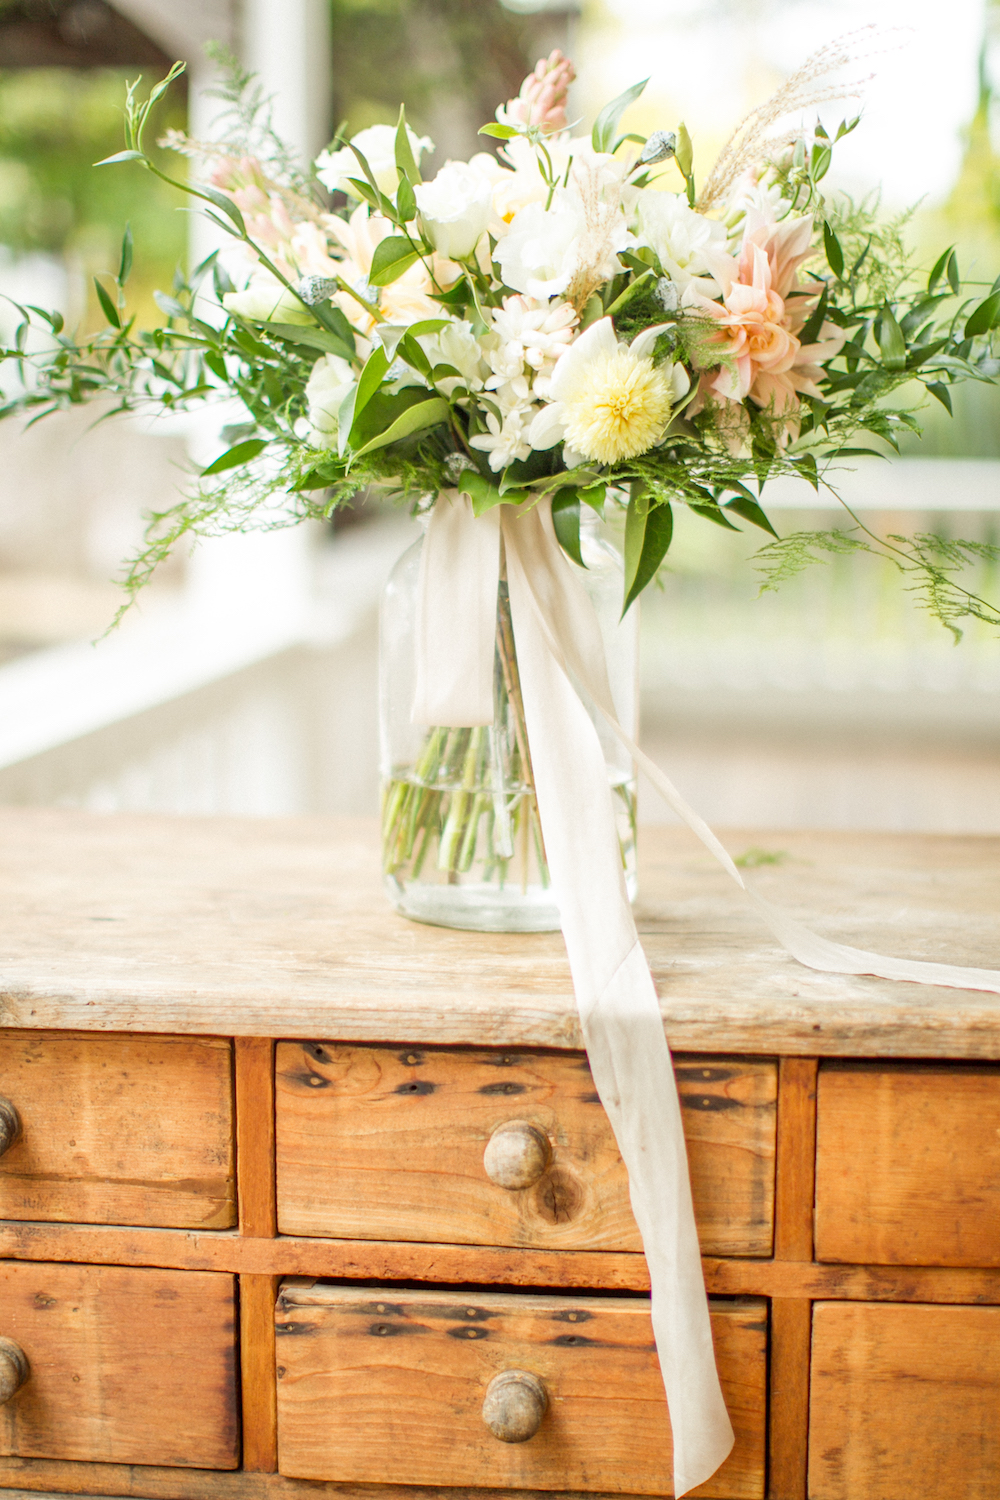 Cozy, Ethereal Wedding Inspiration at The General's Daughter, generals daughter wedding inspiration, rustic bouquet